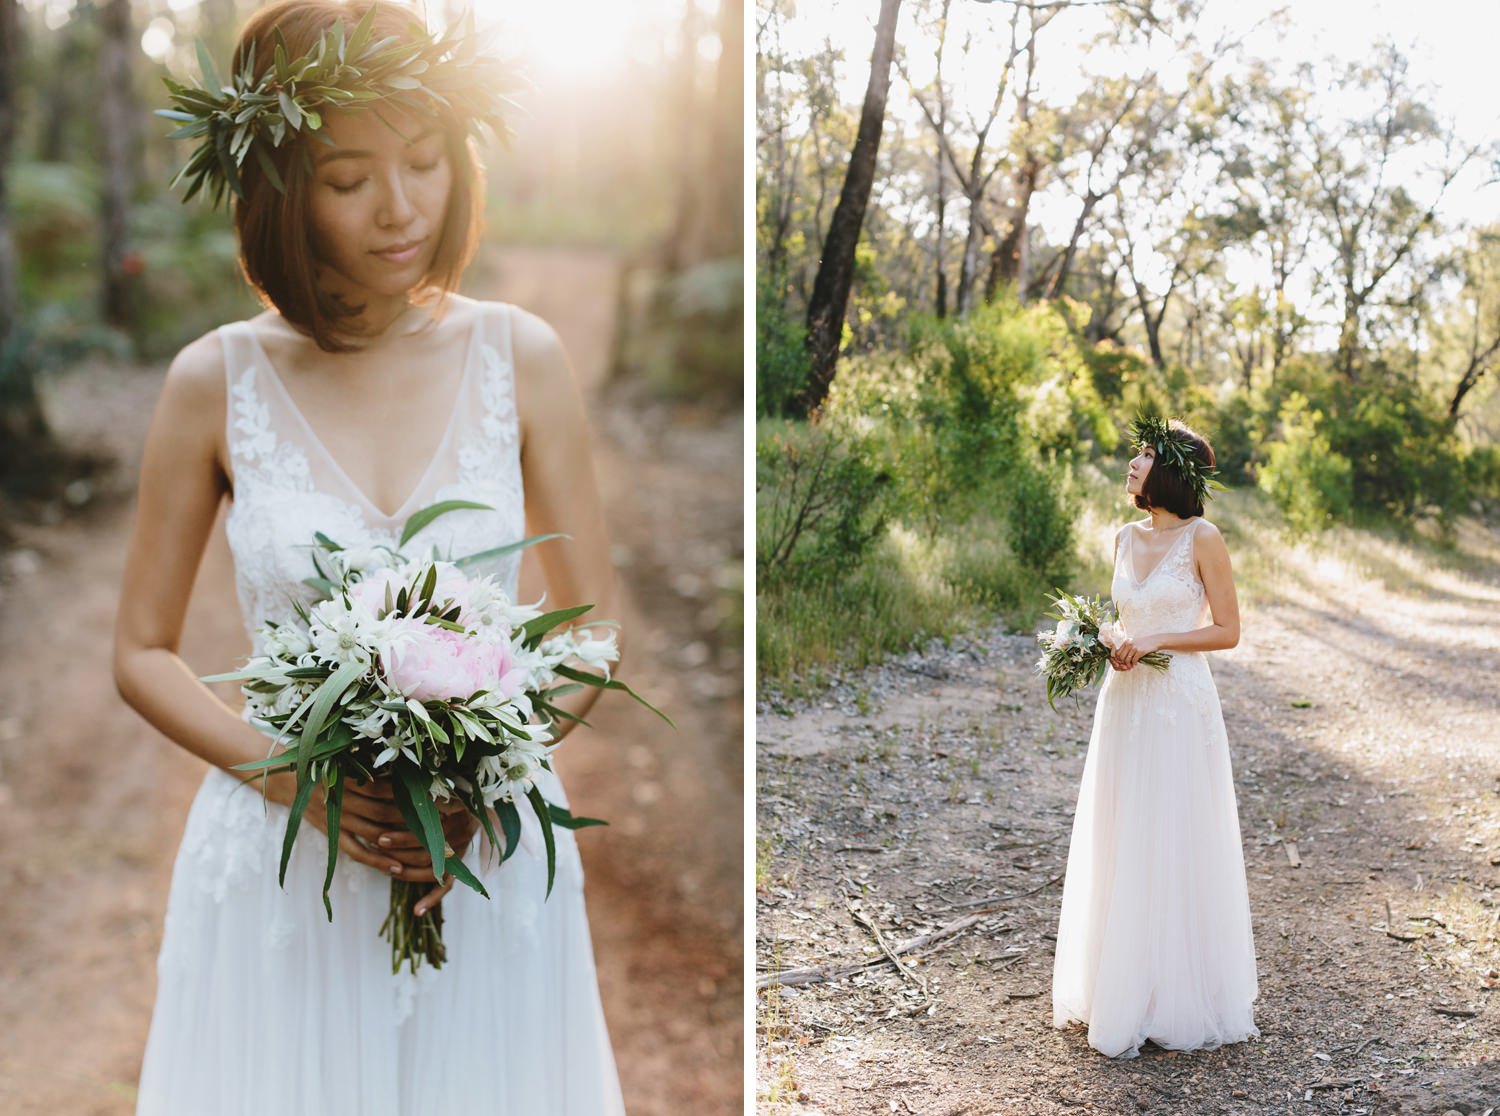 151-Barn_Wedding_Australia_Sam_Ting.jpg